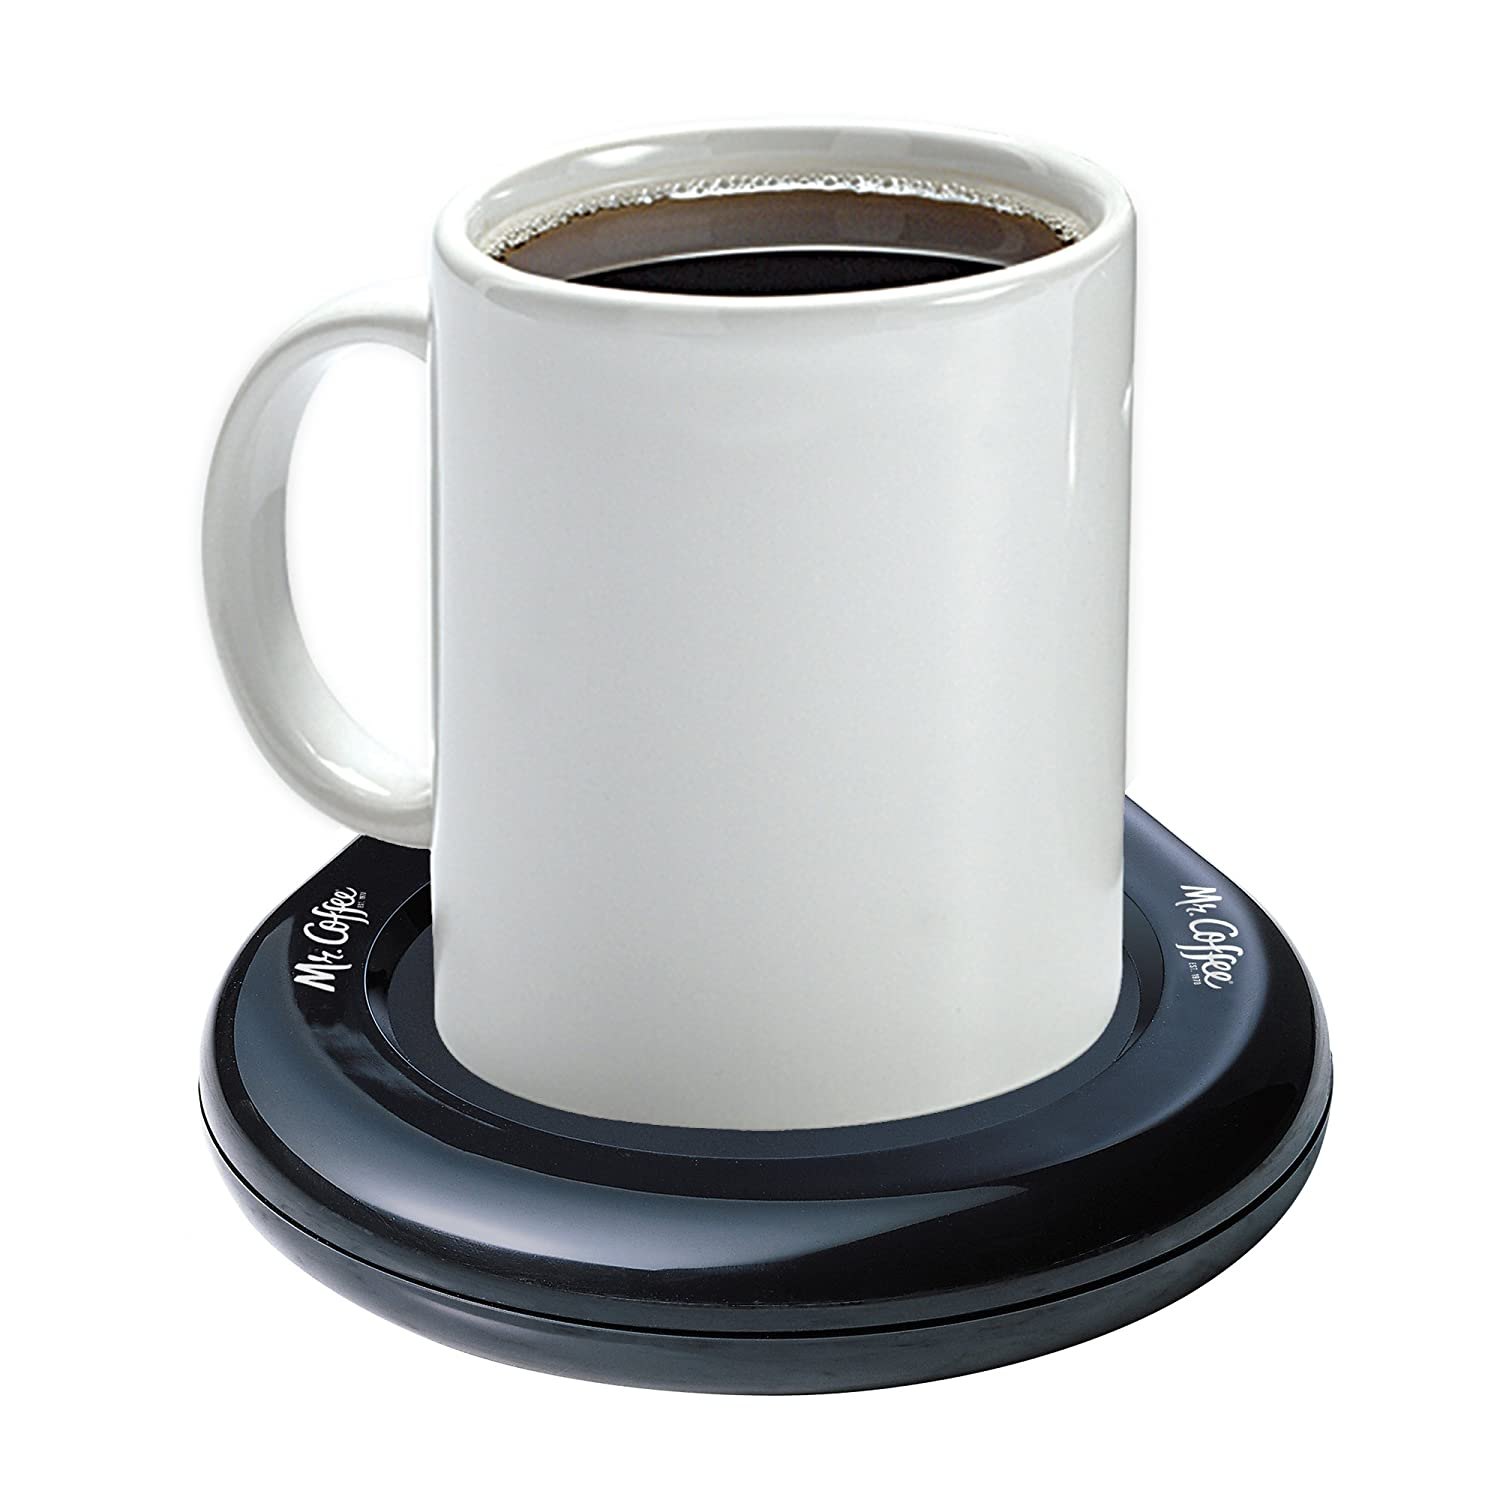 Coffee cup you can smoke out of - Amazon Com Mr Coffee Mug Warmer For Office Home Use Mwblkpdq Rb Beverage Warmers Kitchen Dining